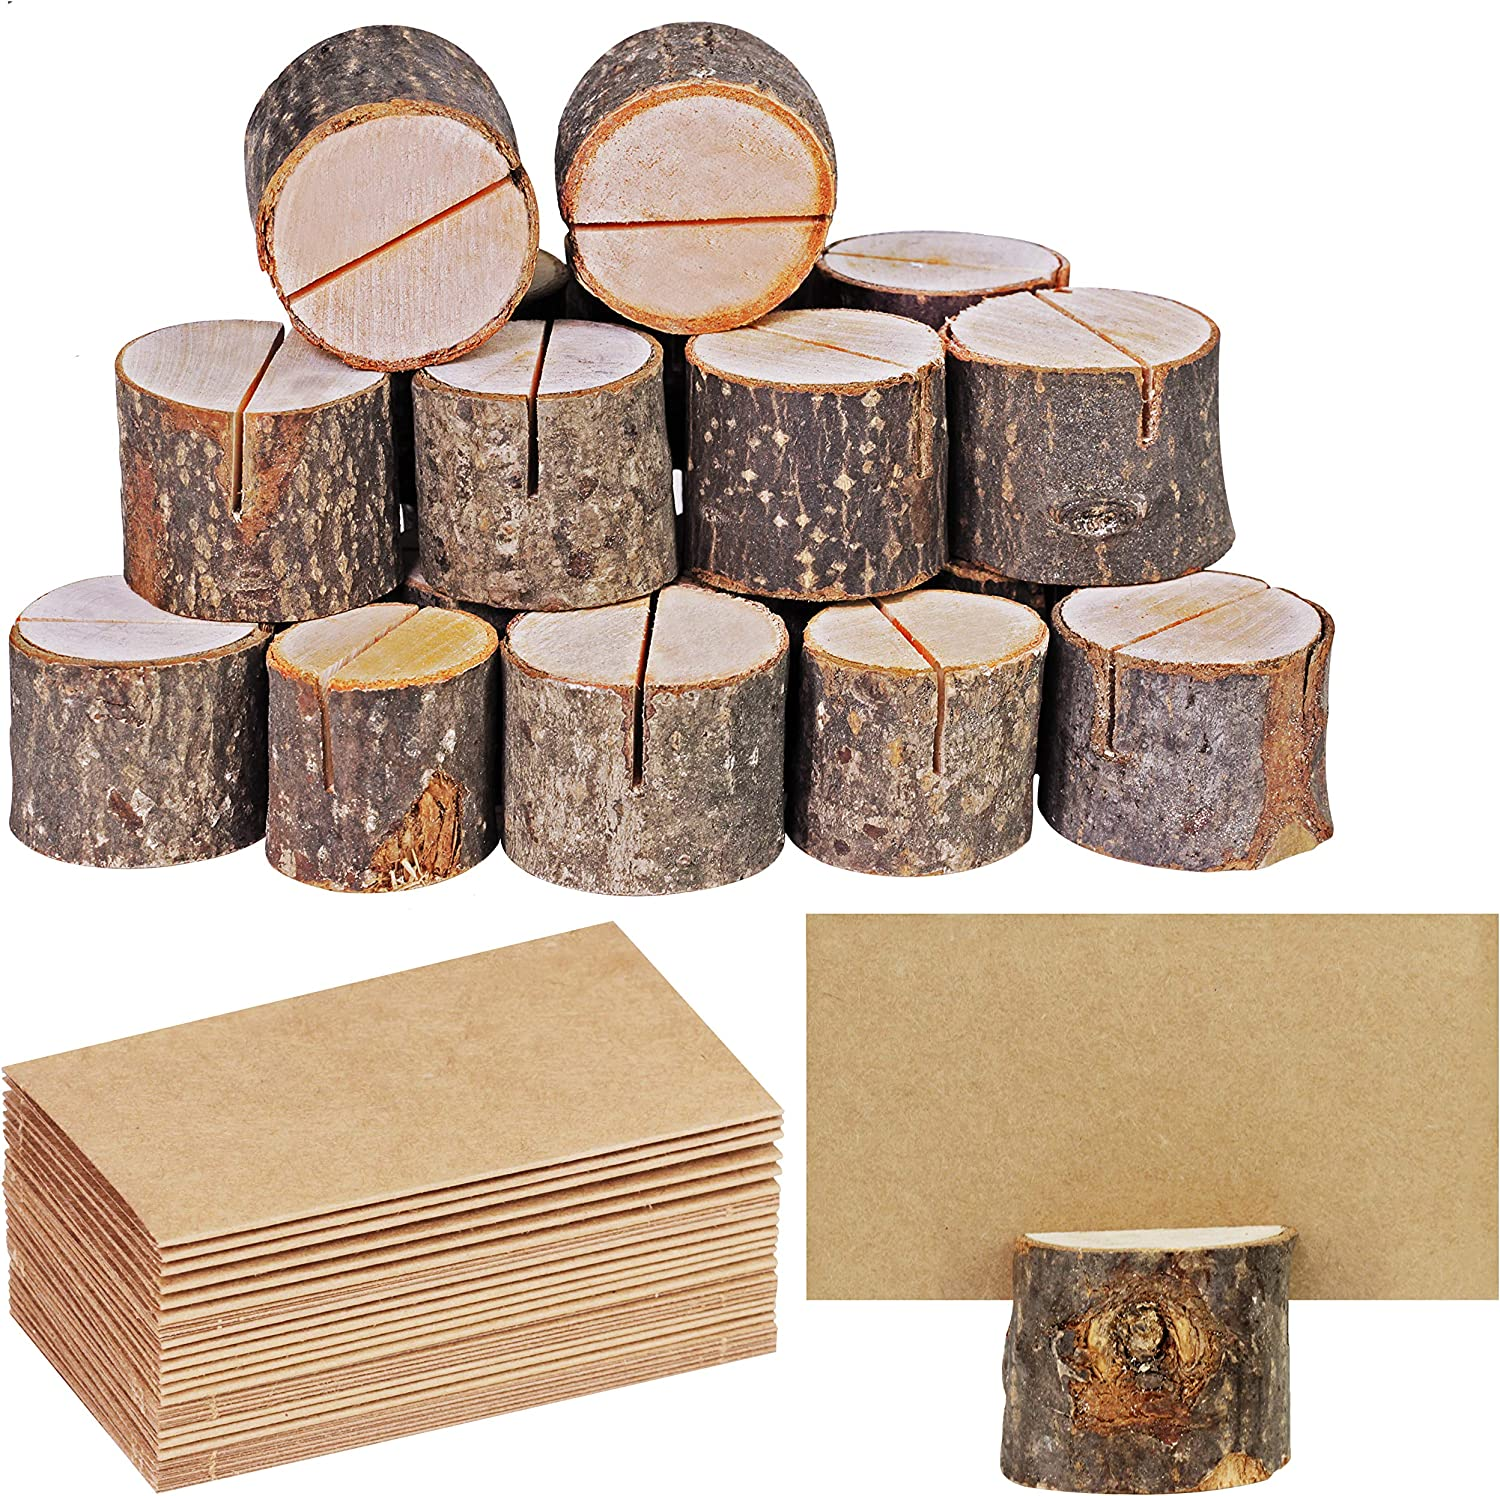 Supla 20 Pcs Rustic Wood Place Card Holders Circular Table Numbers Holder Stand Wooden Bark Memo Holder Card Photo Picture Note Clip Holders and Kraft Place Cards Bulk Wedding Party Table Number Sign: Home & Kitchen